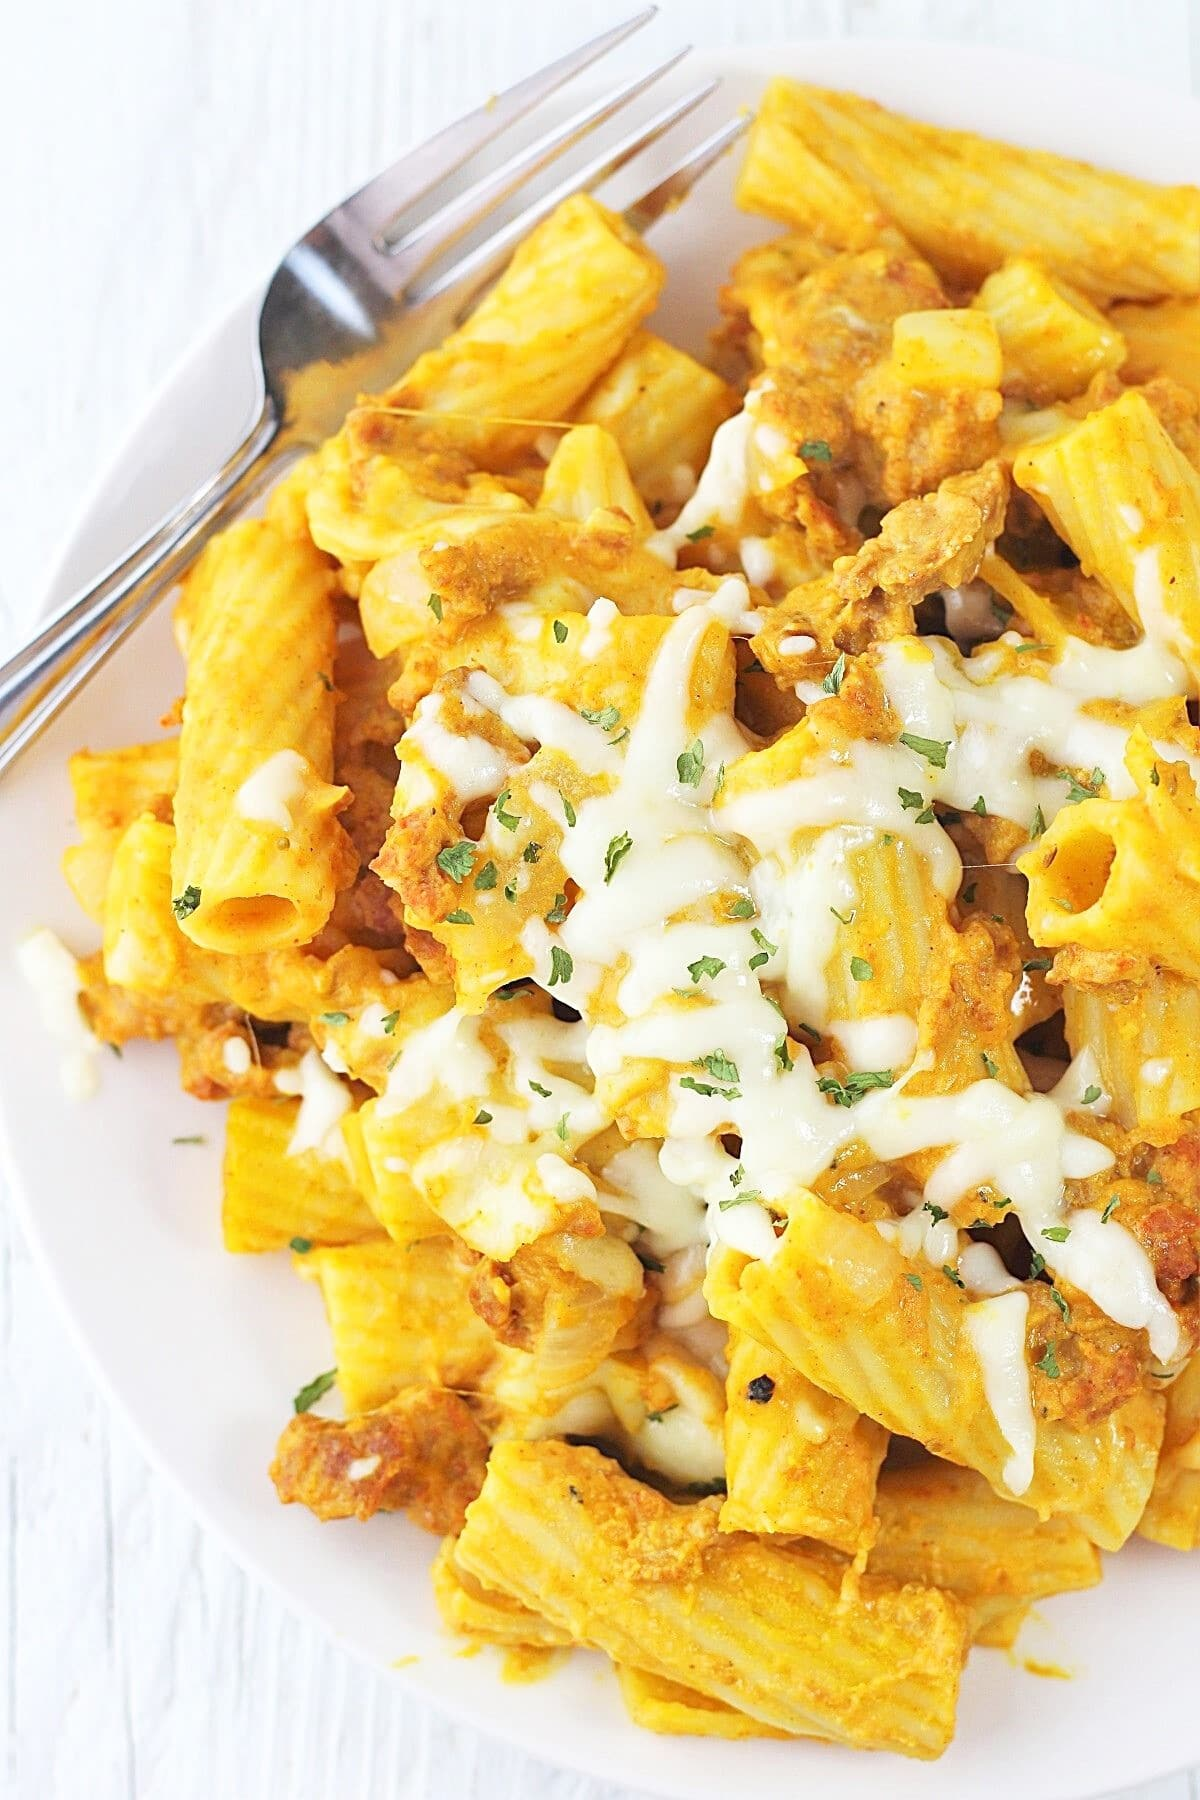 serving of pumpkin and sausage pasta bake on a plate with a fork